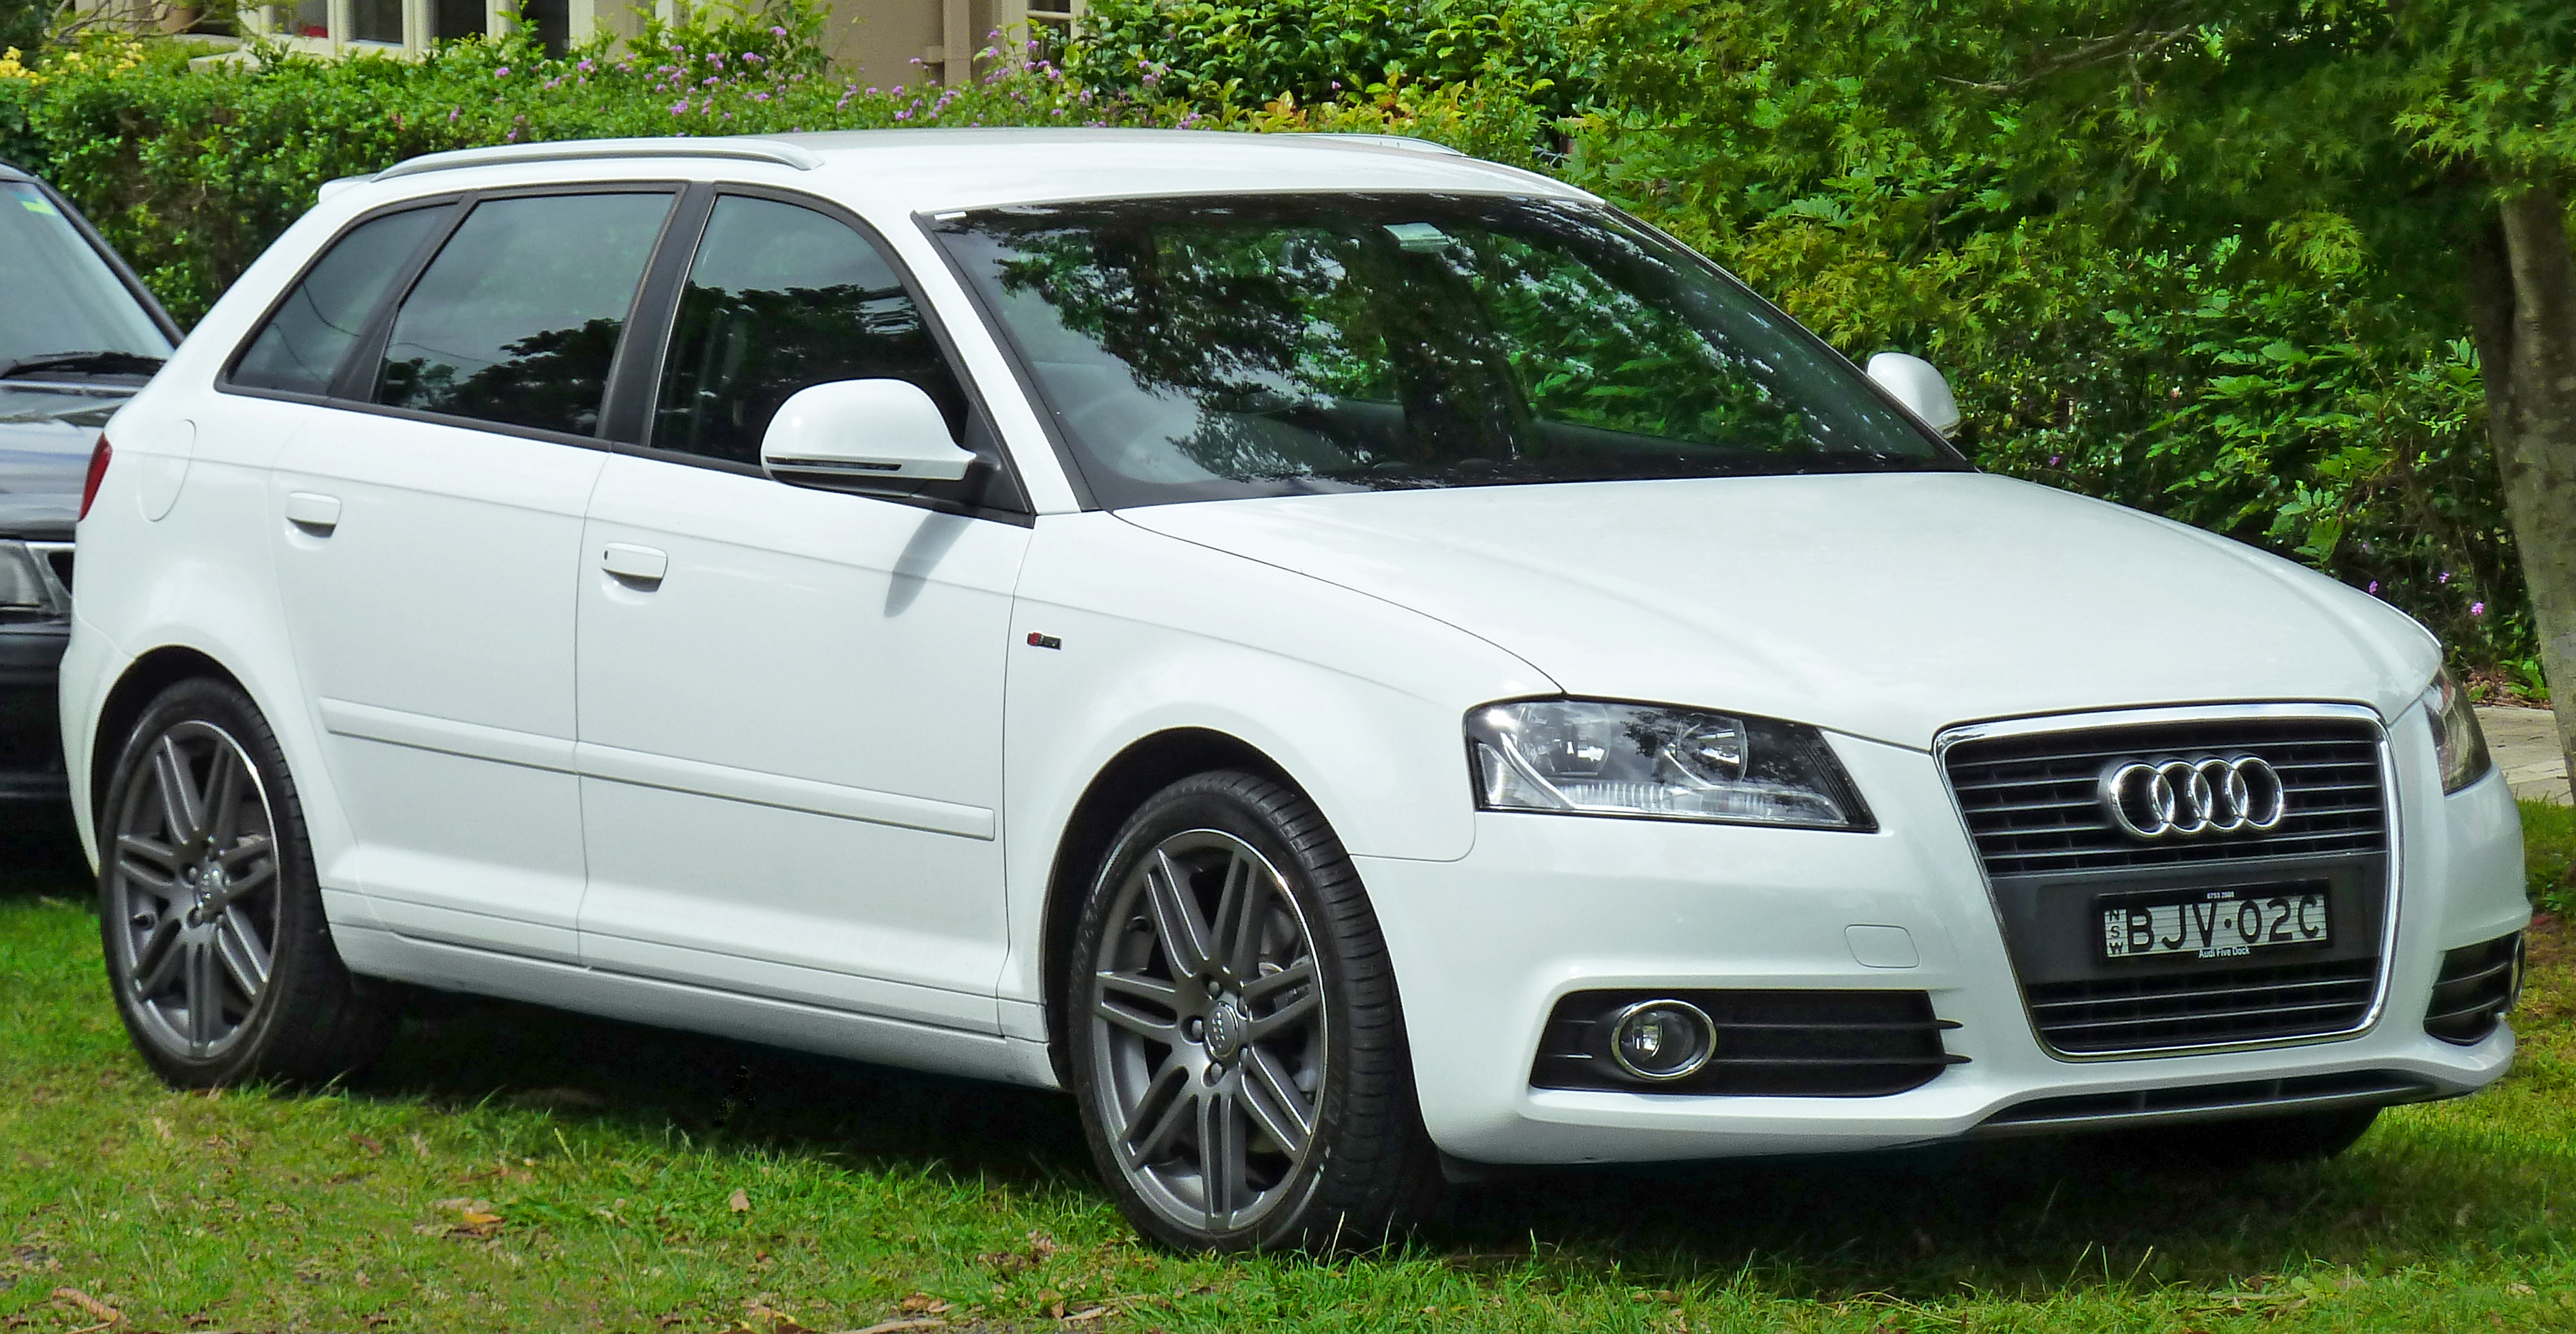 file 2009 audi a3 8pa 2 0 tdi 5 door sportback 2011 04. Black Bedroom Furniture Sets. Home Design Ideas